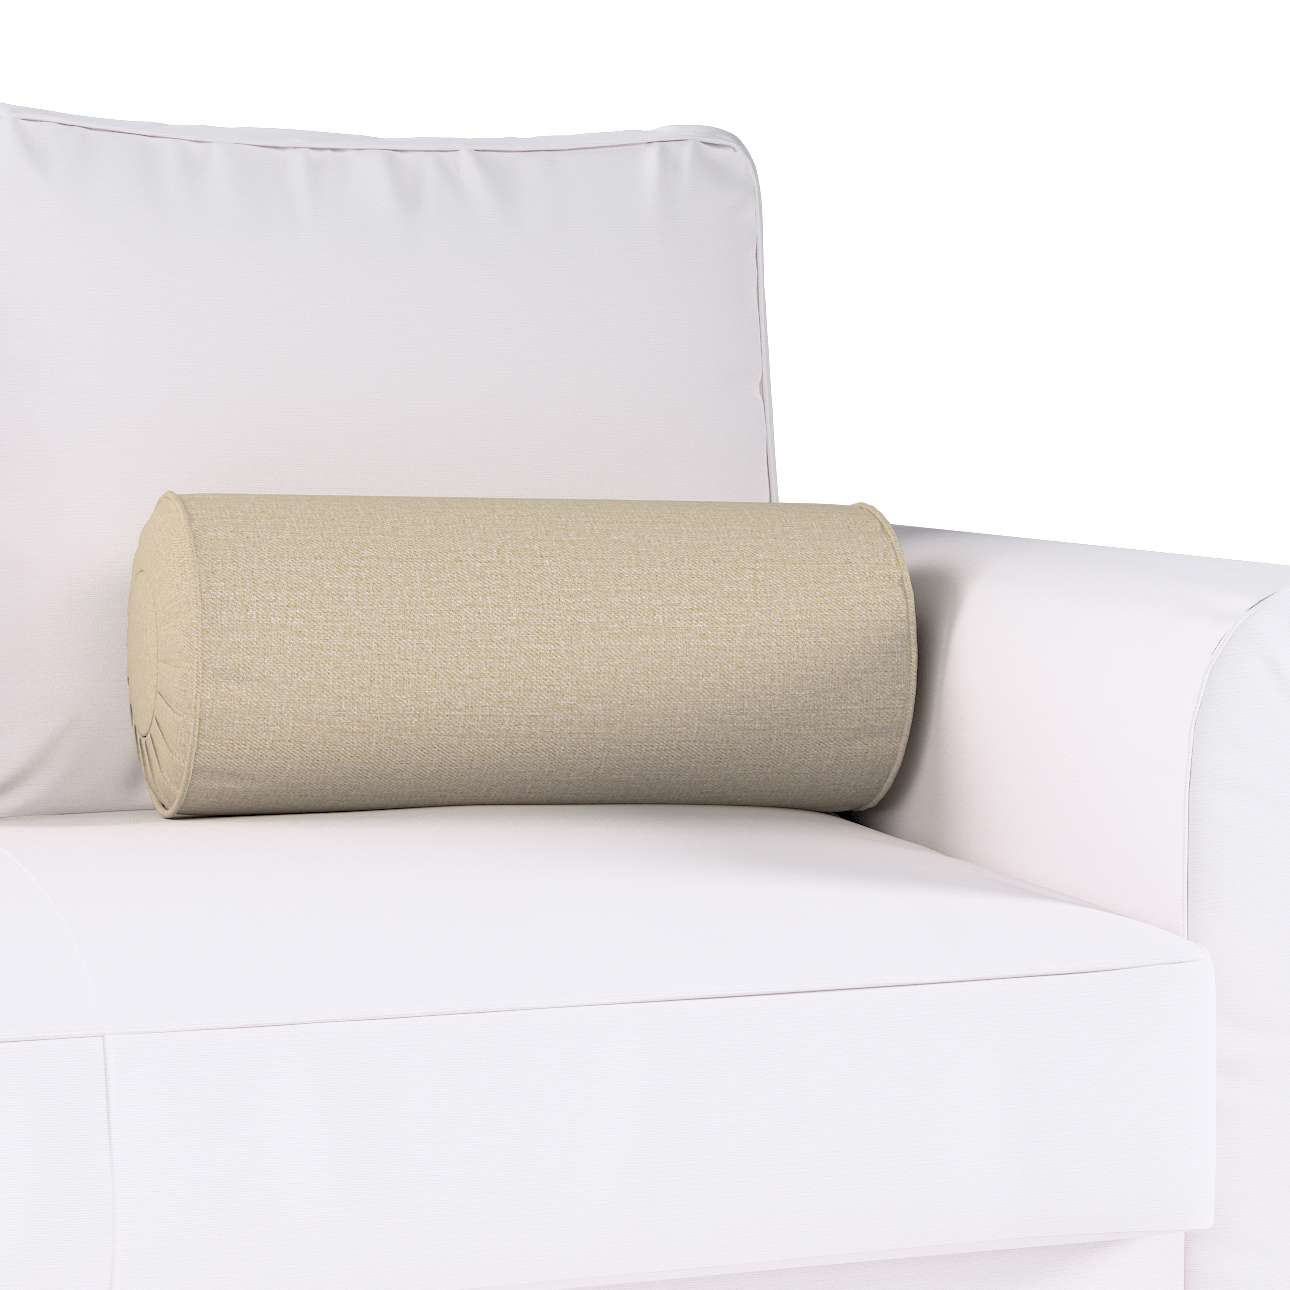 Bolster cushion with pleats in collection Edinburgh, fabric: 115-78